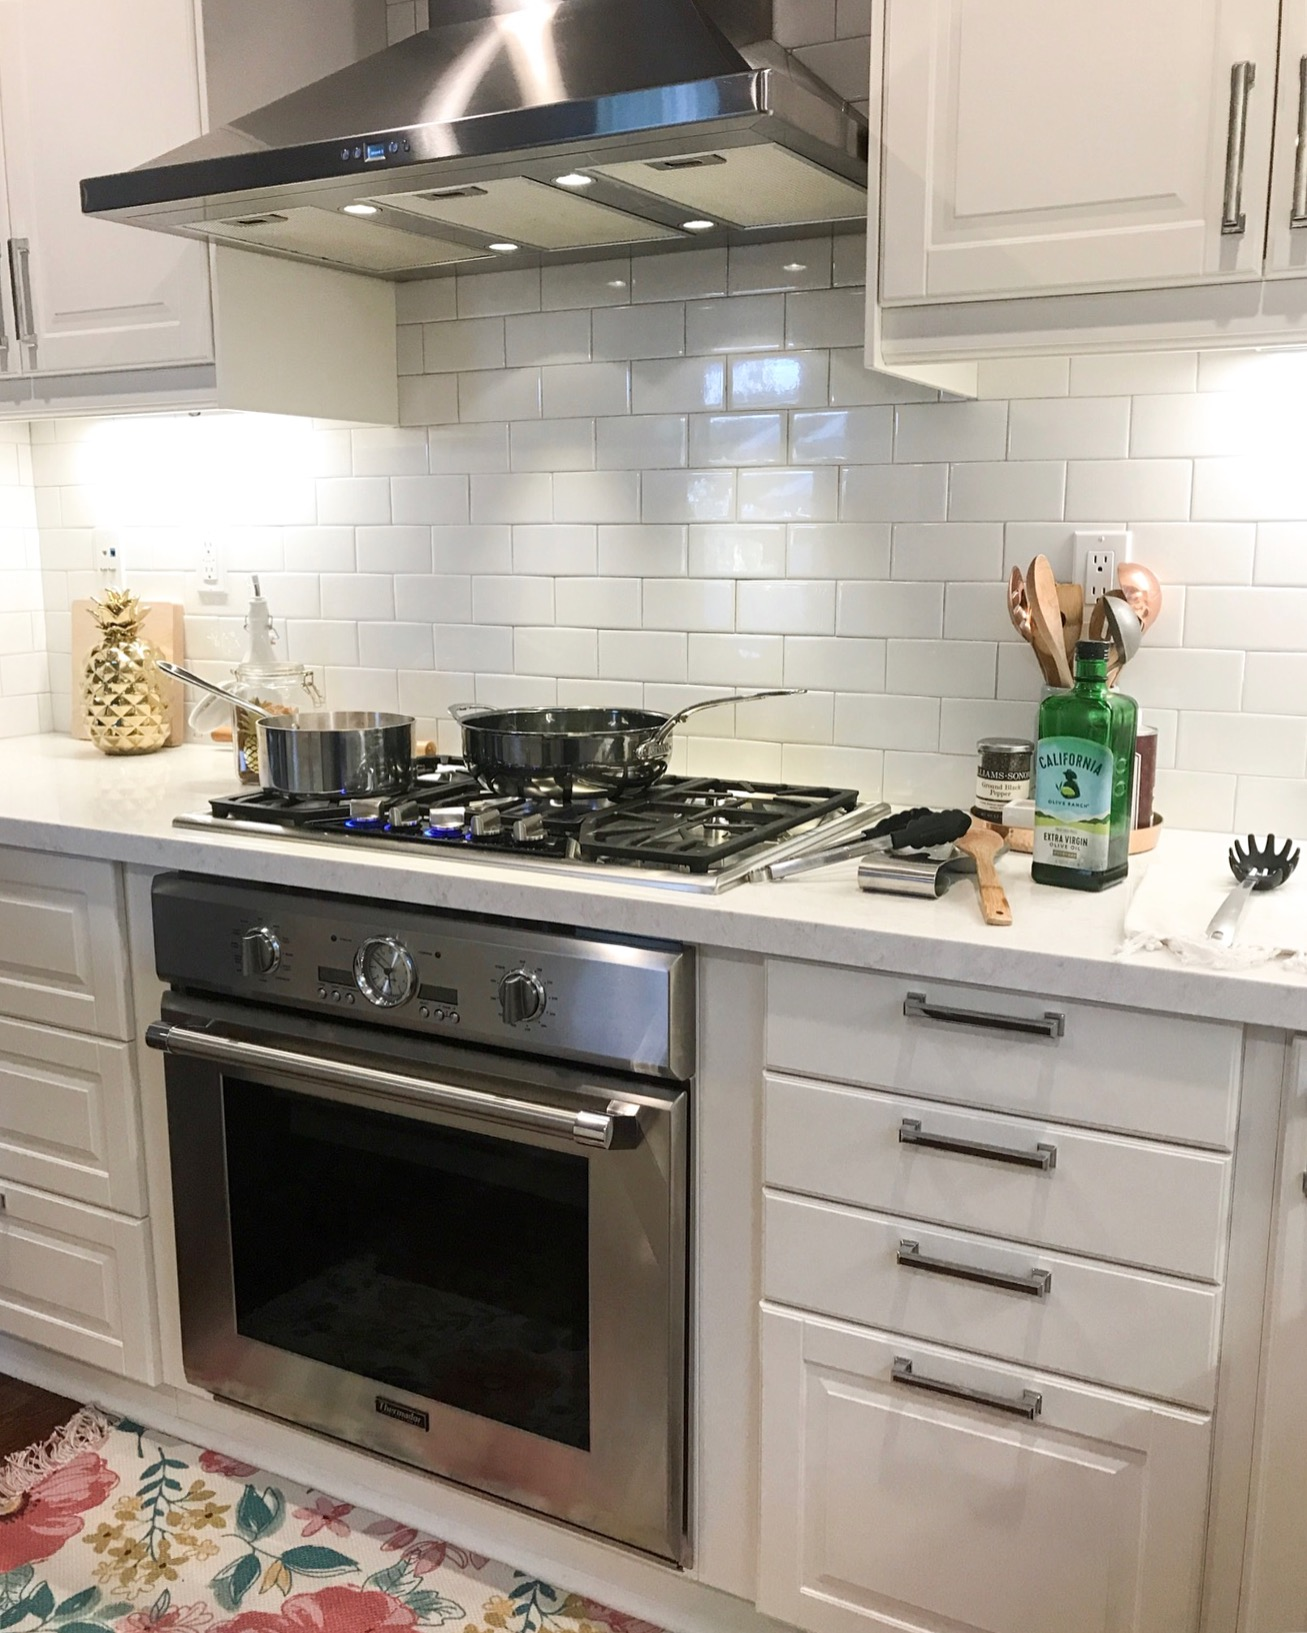 Ikea Kitchen Appliances: How To Customize Your IKEA Kitchen: 10 Tips To Make It Look Custom